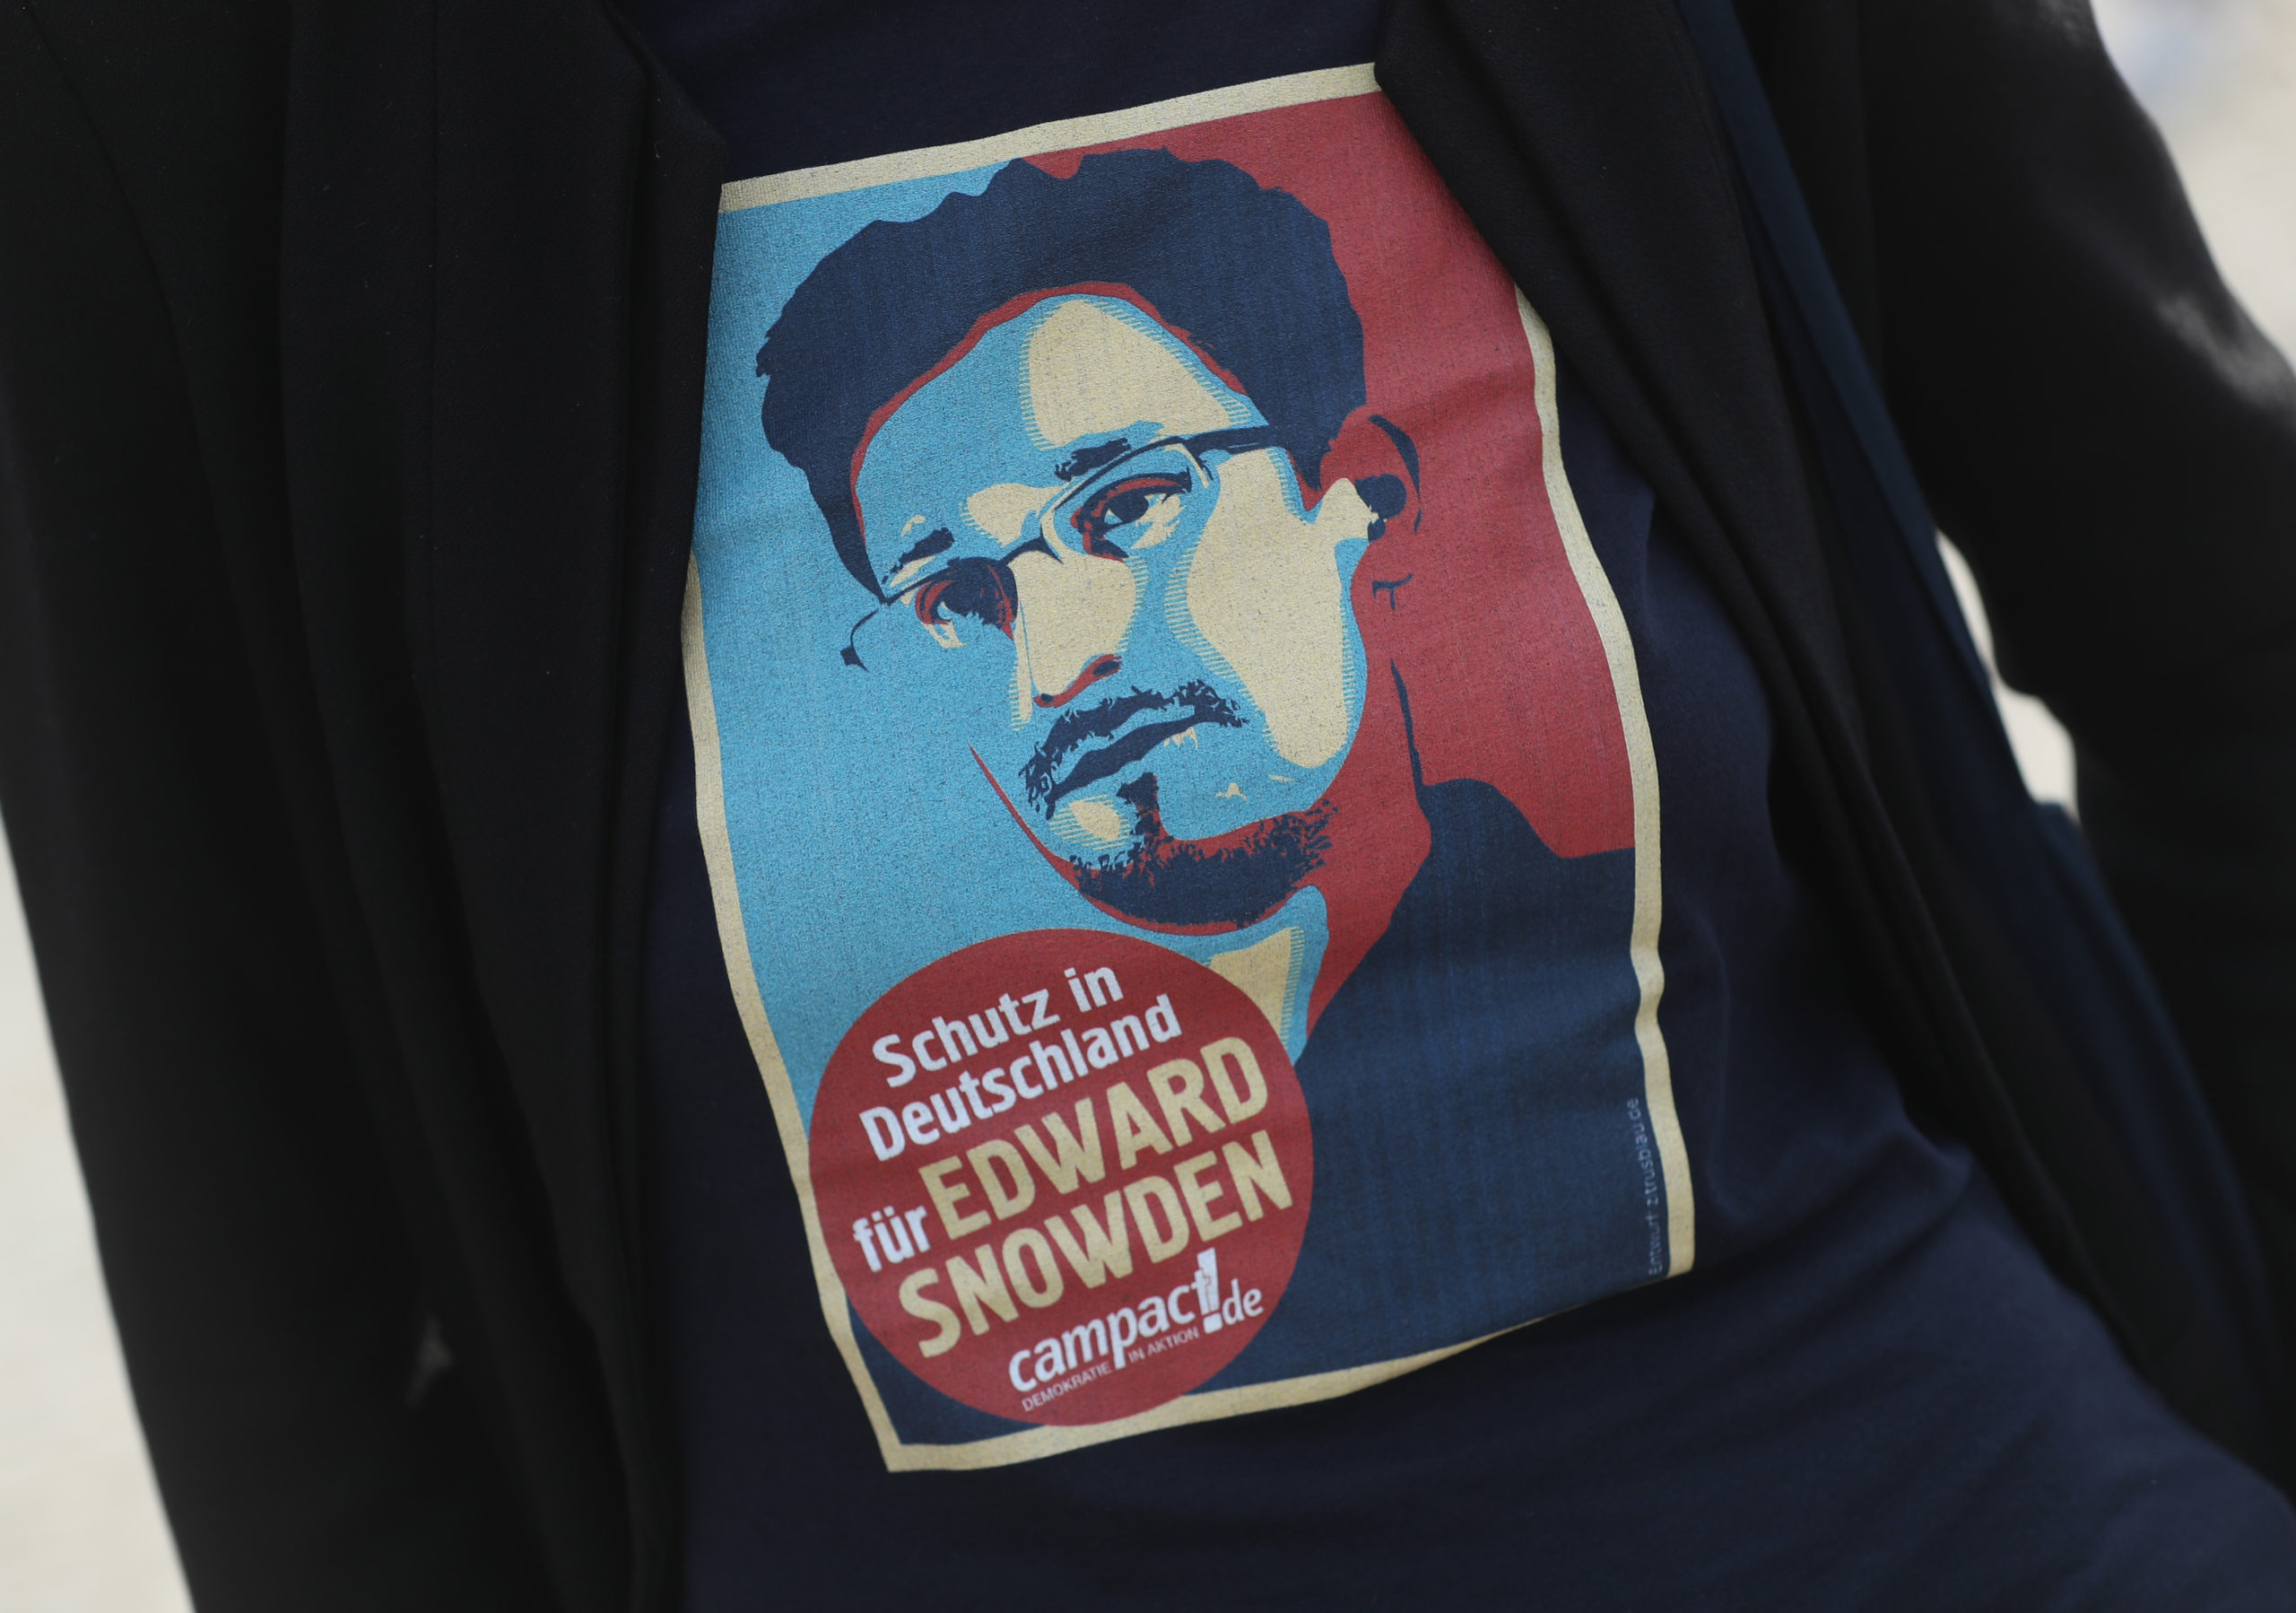 """Activists, including one wearing a t-shirt that shows a picture of U.S. whistleblower Edward Snowden that reads: """"Protection in Germany for Edward Snowden"""" protest against pending legislation they claim would greatly expand legal surveillance capabilities. (Photo by Sean Gallup/Getty Images)"""